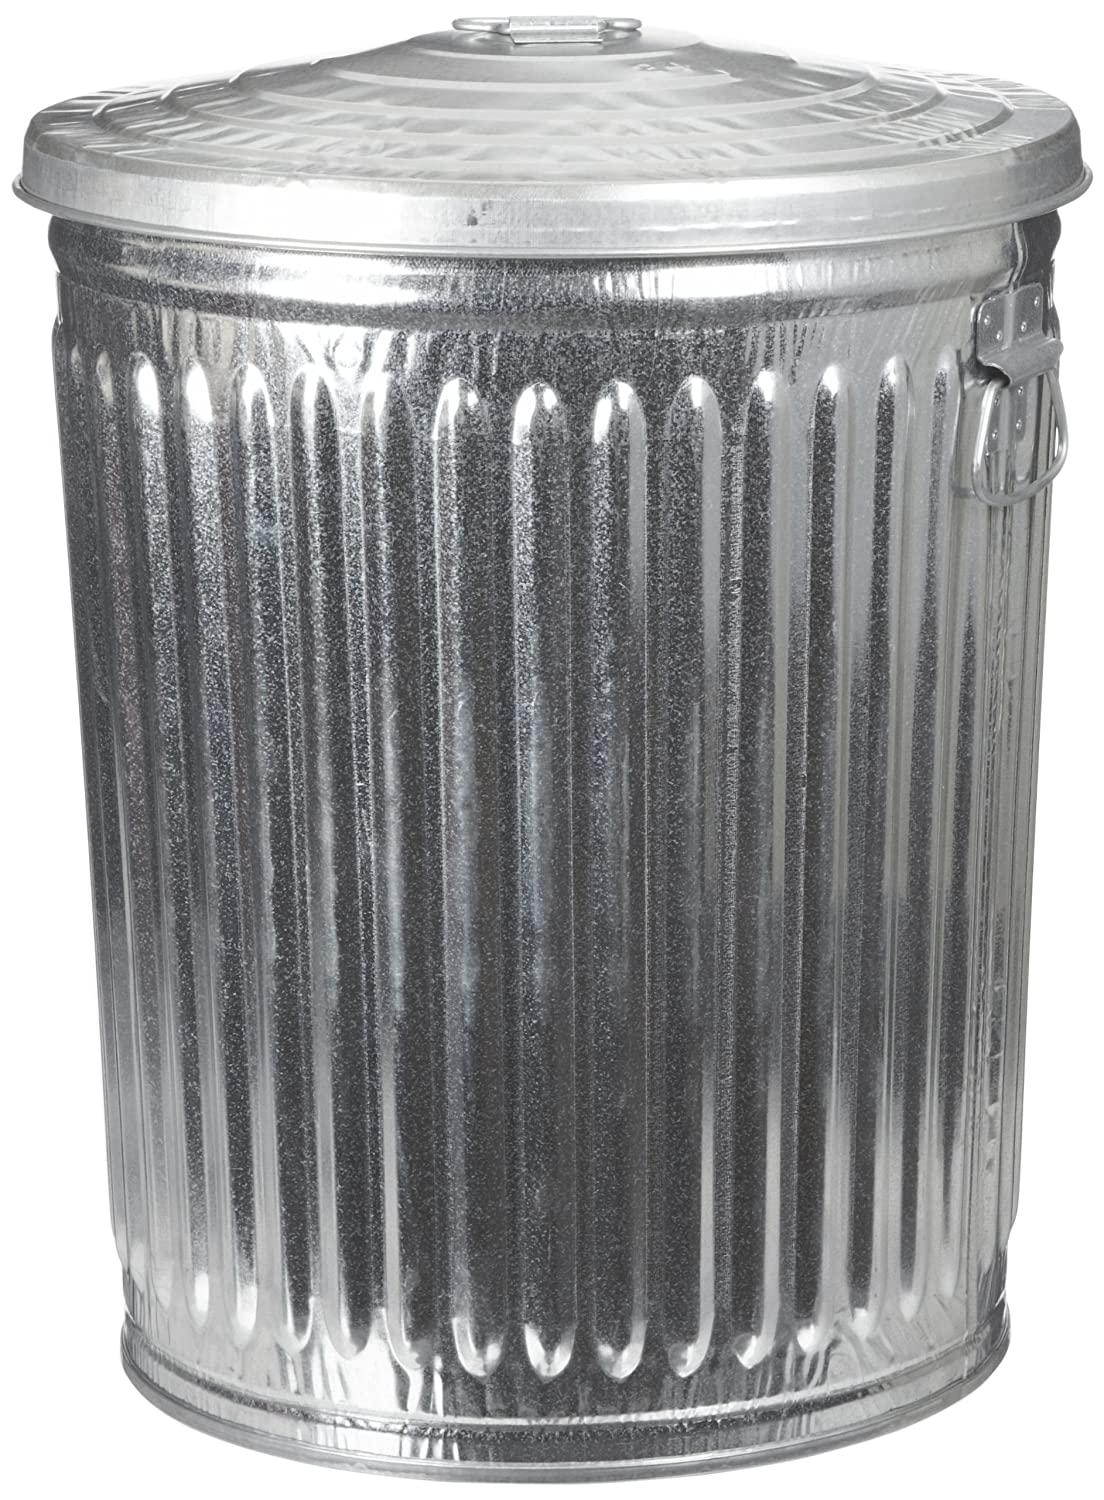 "Witt Industries WCD32CL Galvanized Steel 32-Gallon Light Duty Trash Can with Lid, Round, 21-1/4"" Diameter x 27-1/2"" Height"